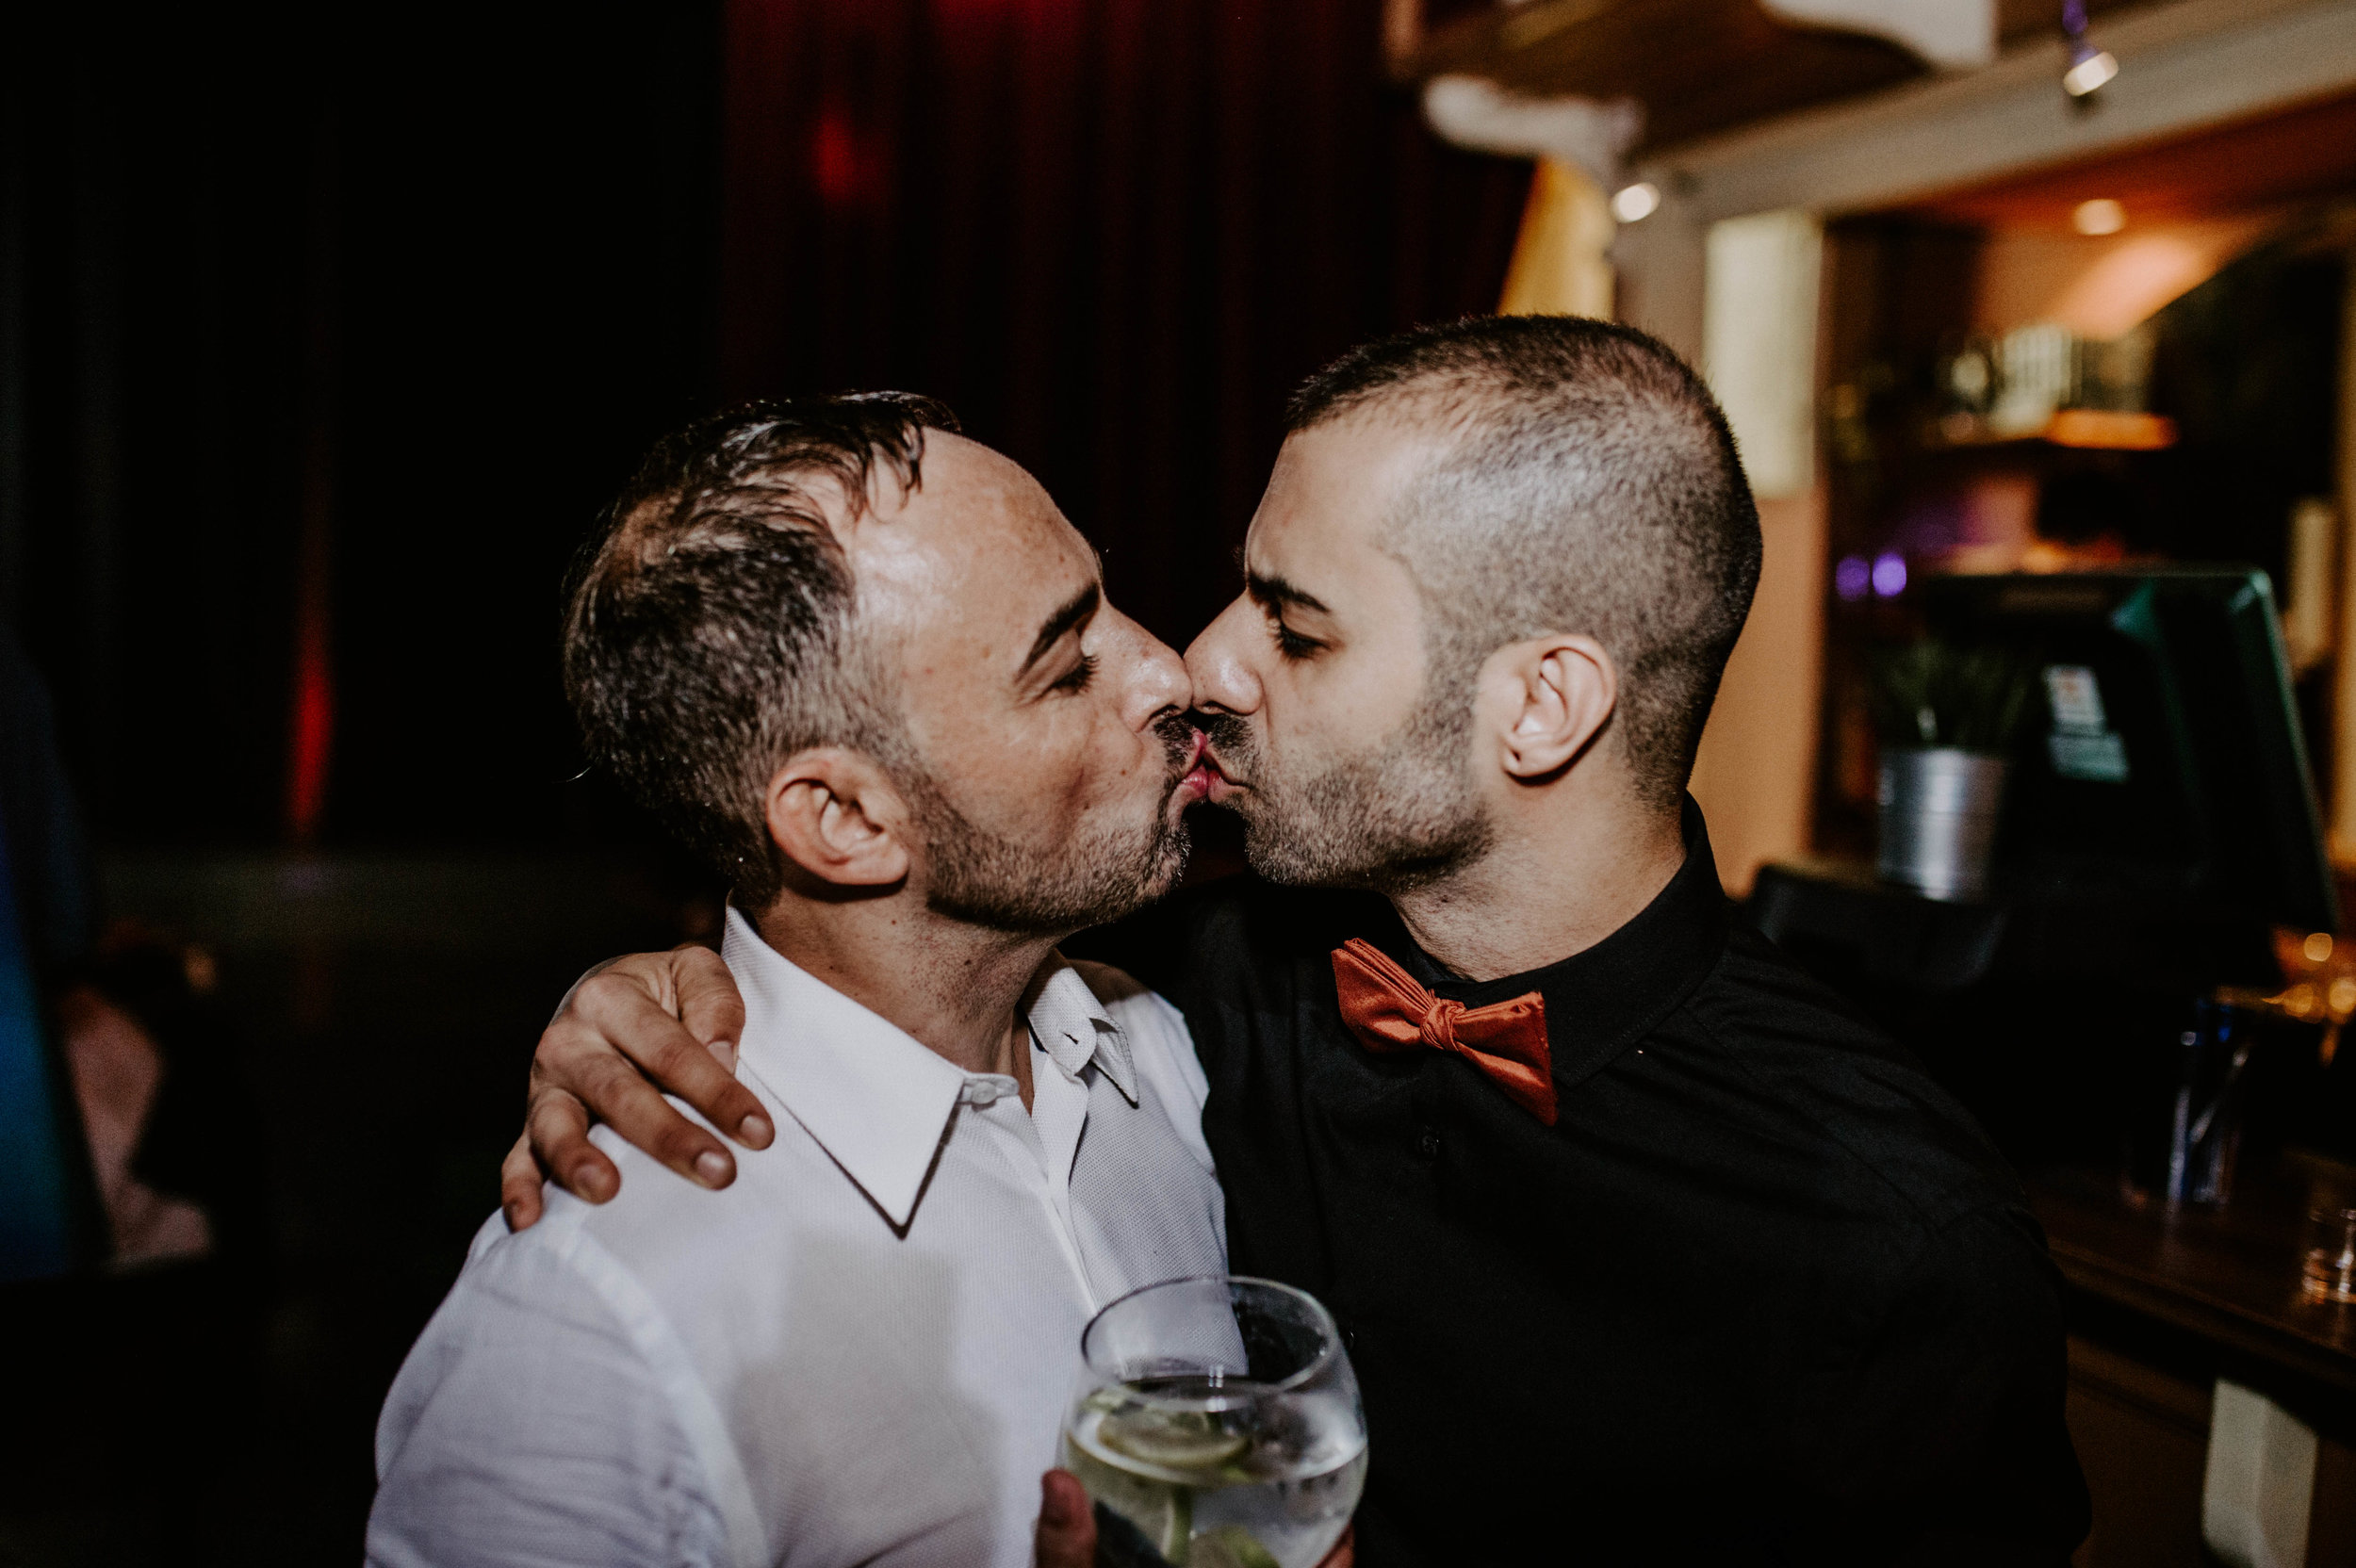 thenortherngirlphotography_bodasindustriales_bodasdiferentes_weddingphotographer_spanishphotographer_spanisgweddingphotographer_happyendings_mercantic_elsiglomercantic_antichrist_love_neon_weddingtattoo_CYNTHIAMANOLO-1096.jpg